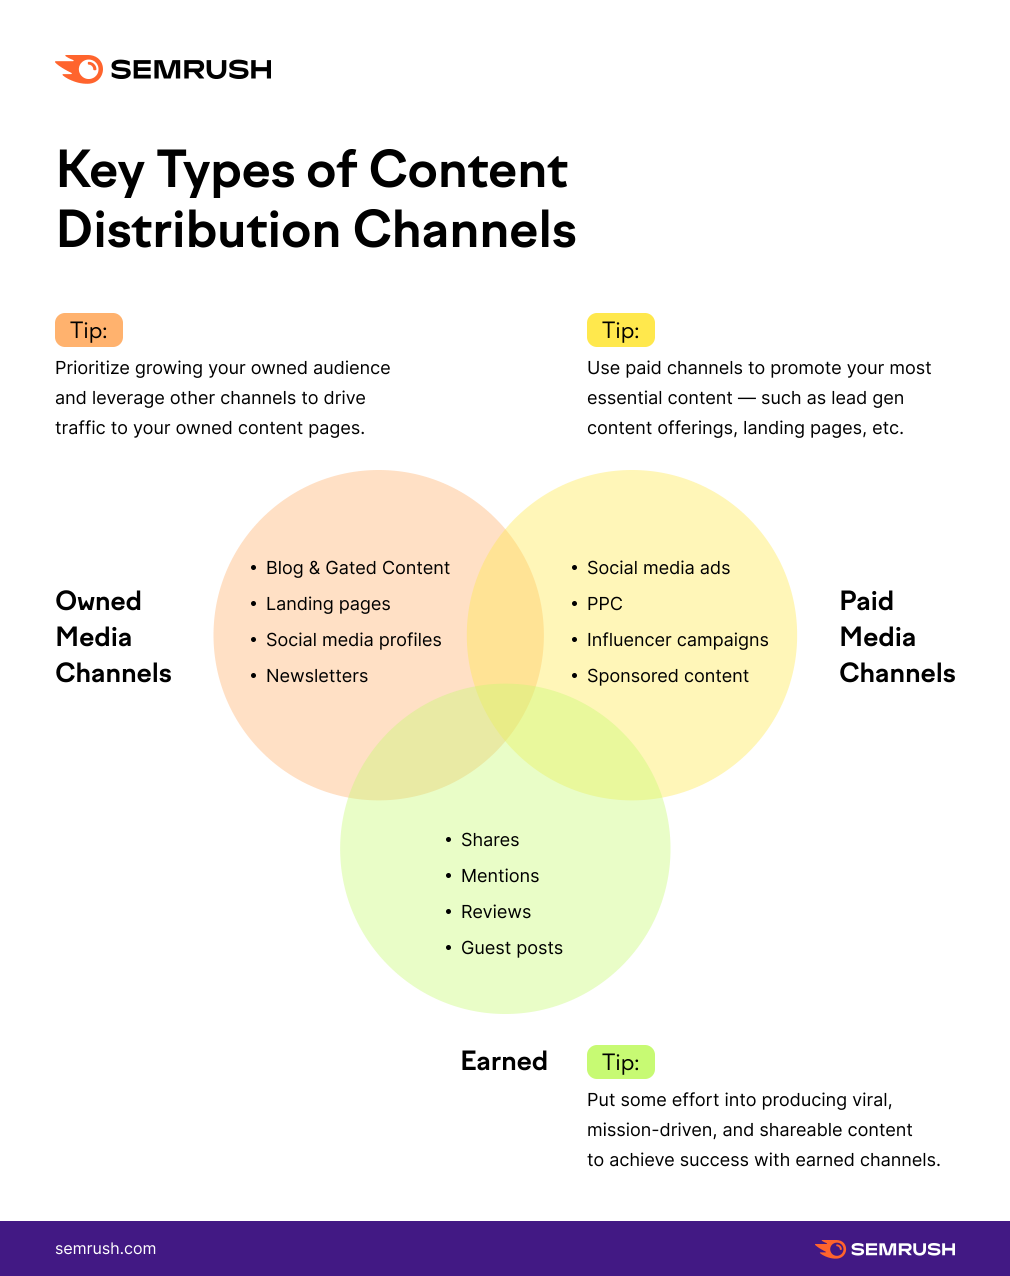 Key Types of Content Distribution Channels